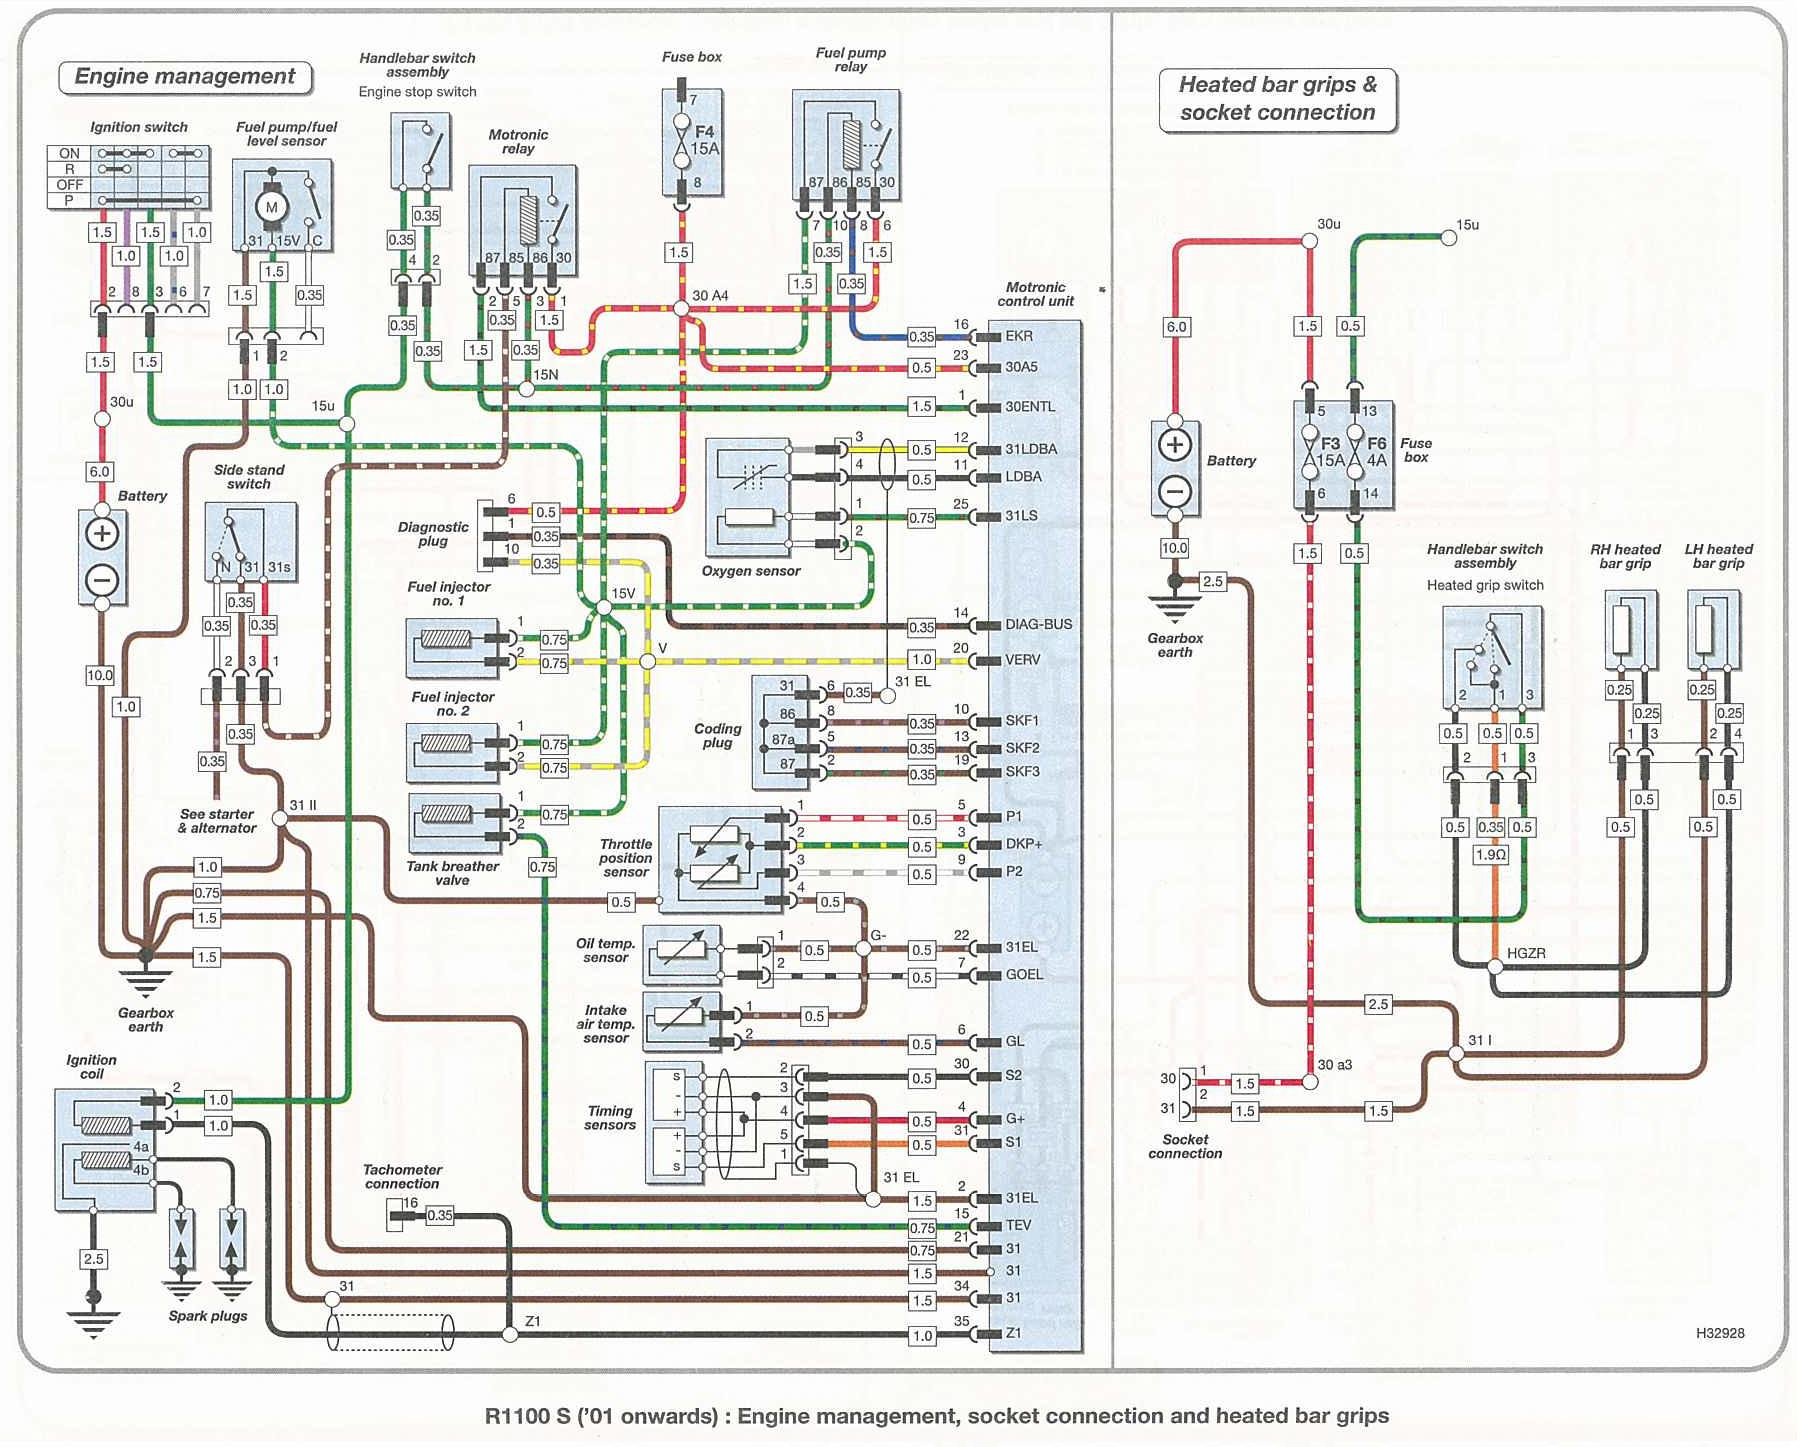 wiring07 bmw r1100s wiring diagrams f650 wiring diagram at mifinder.co